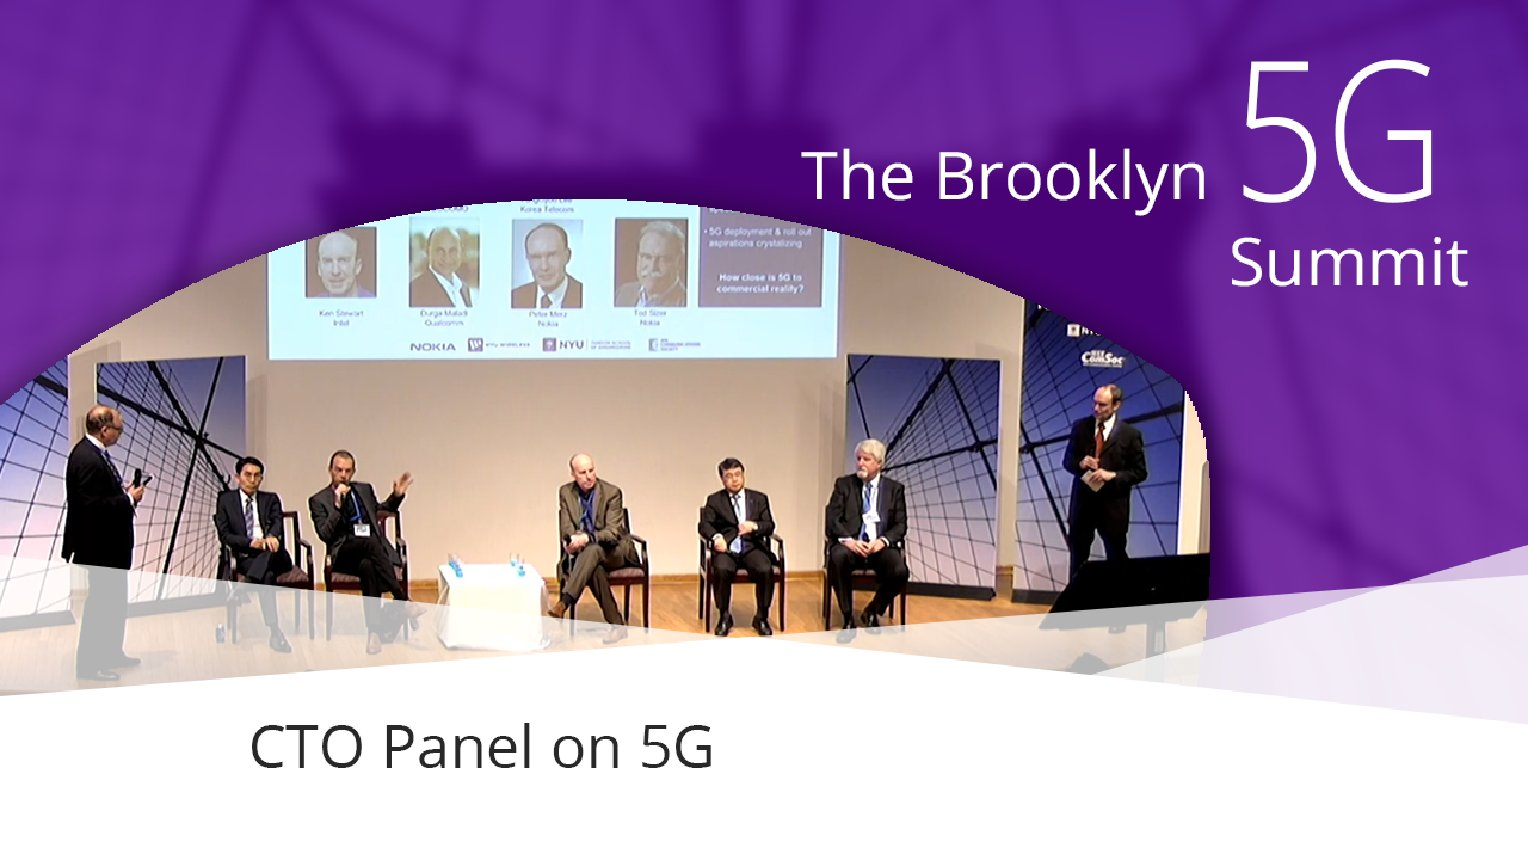 CTO Panel on 5G: Brooklyn 5G Summit 2017